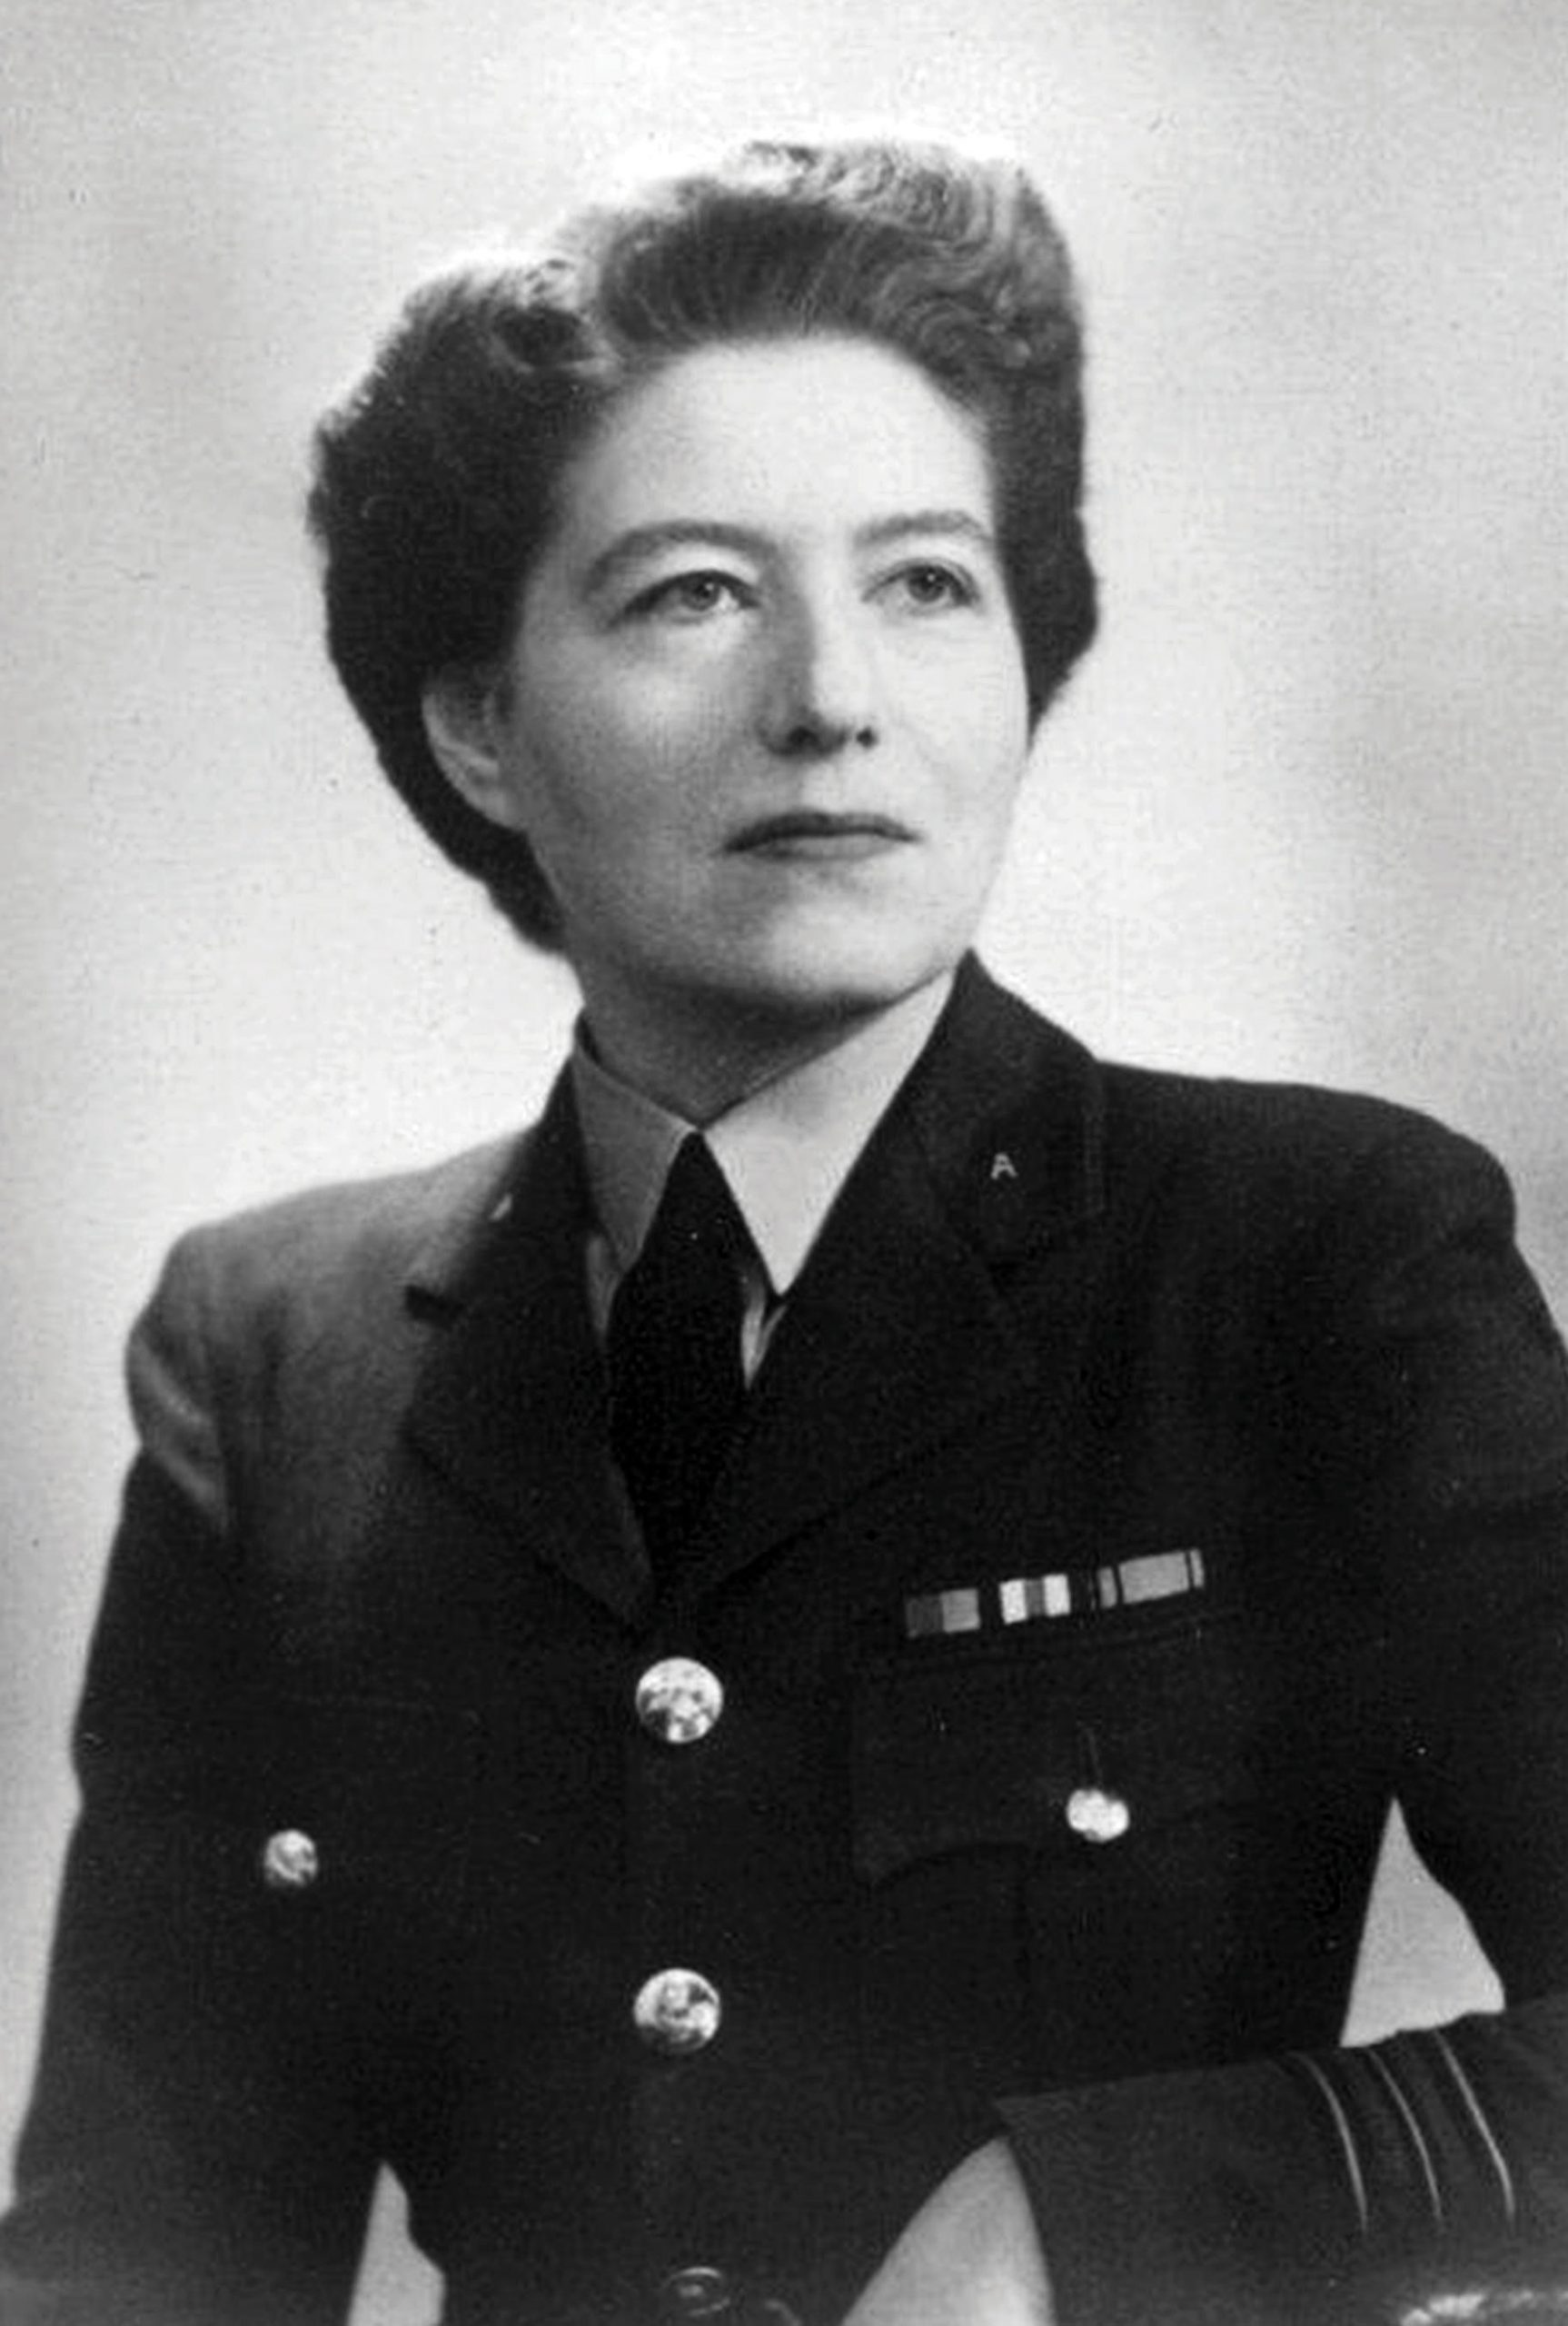 Vera May Atkins, a British intelligence officer who worked in the French Section of the SOE from 1940 to 1945. Photograph courtesy of GL Archive/Alamy Stock Photo.